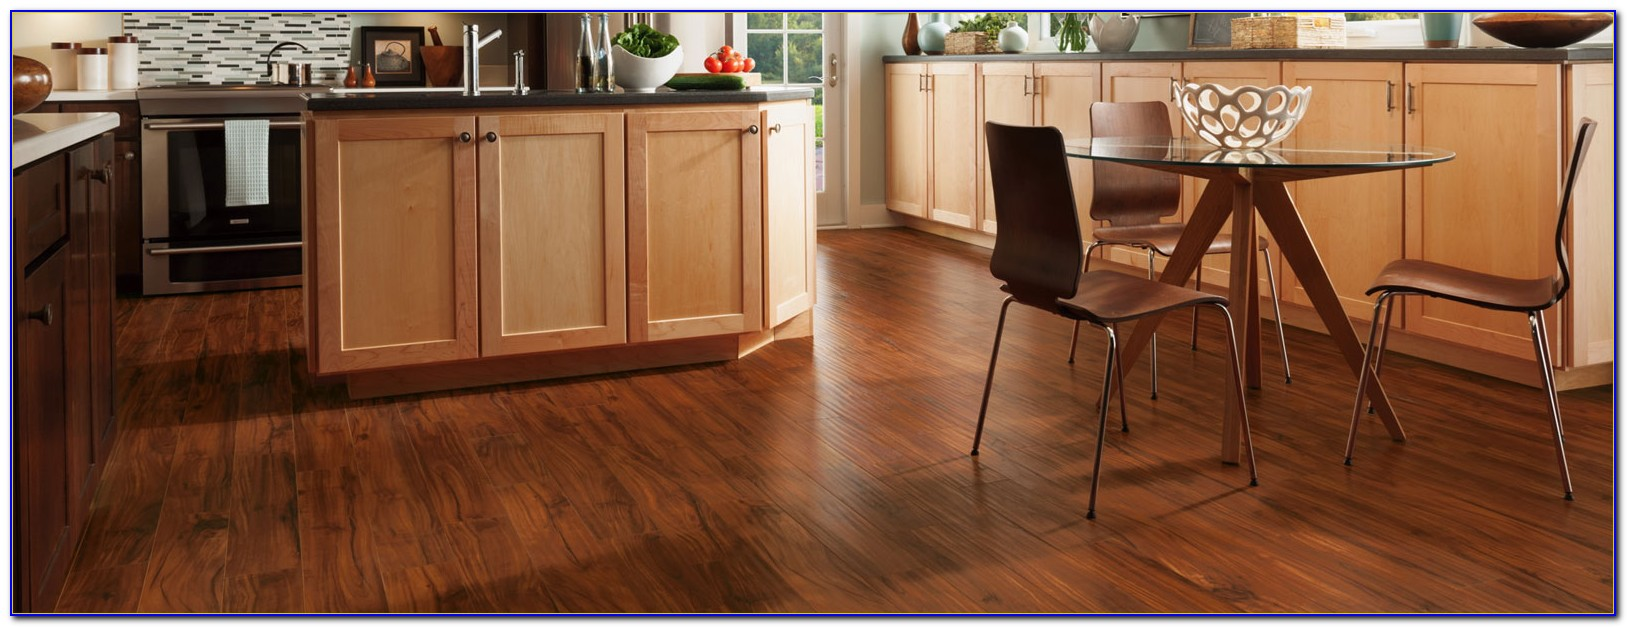 Bruce Hardwood Floors Raleigh Nc